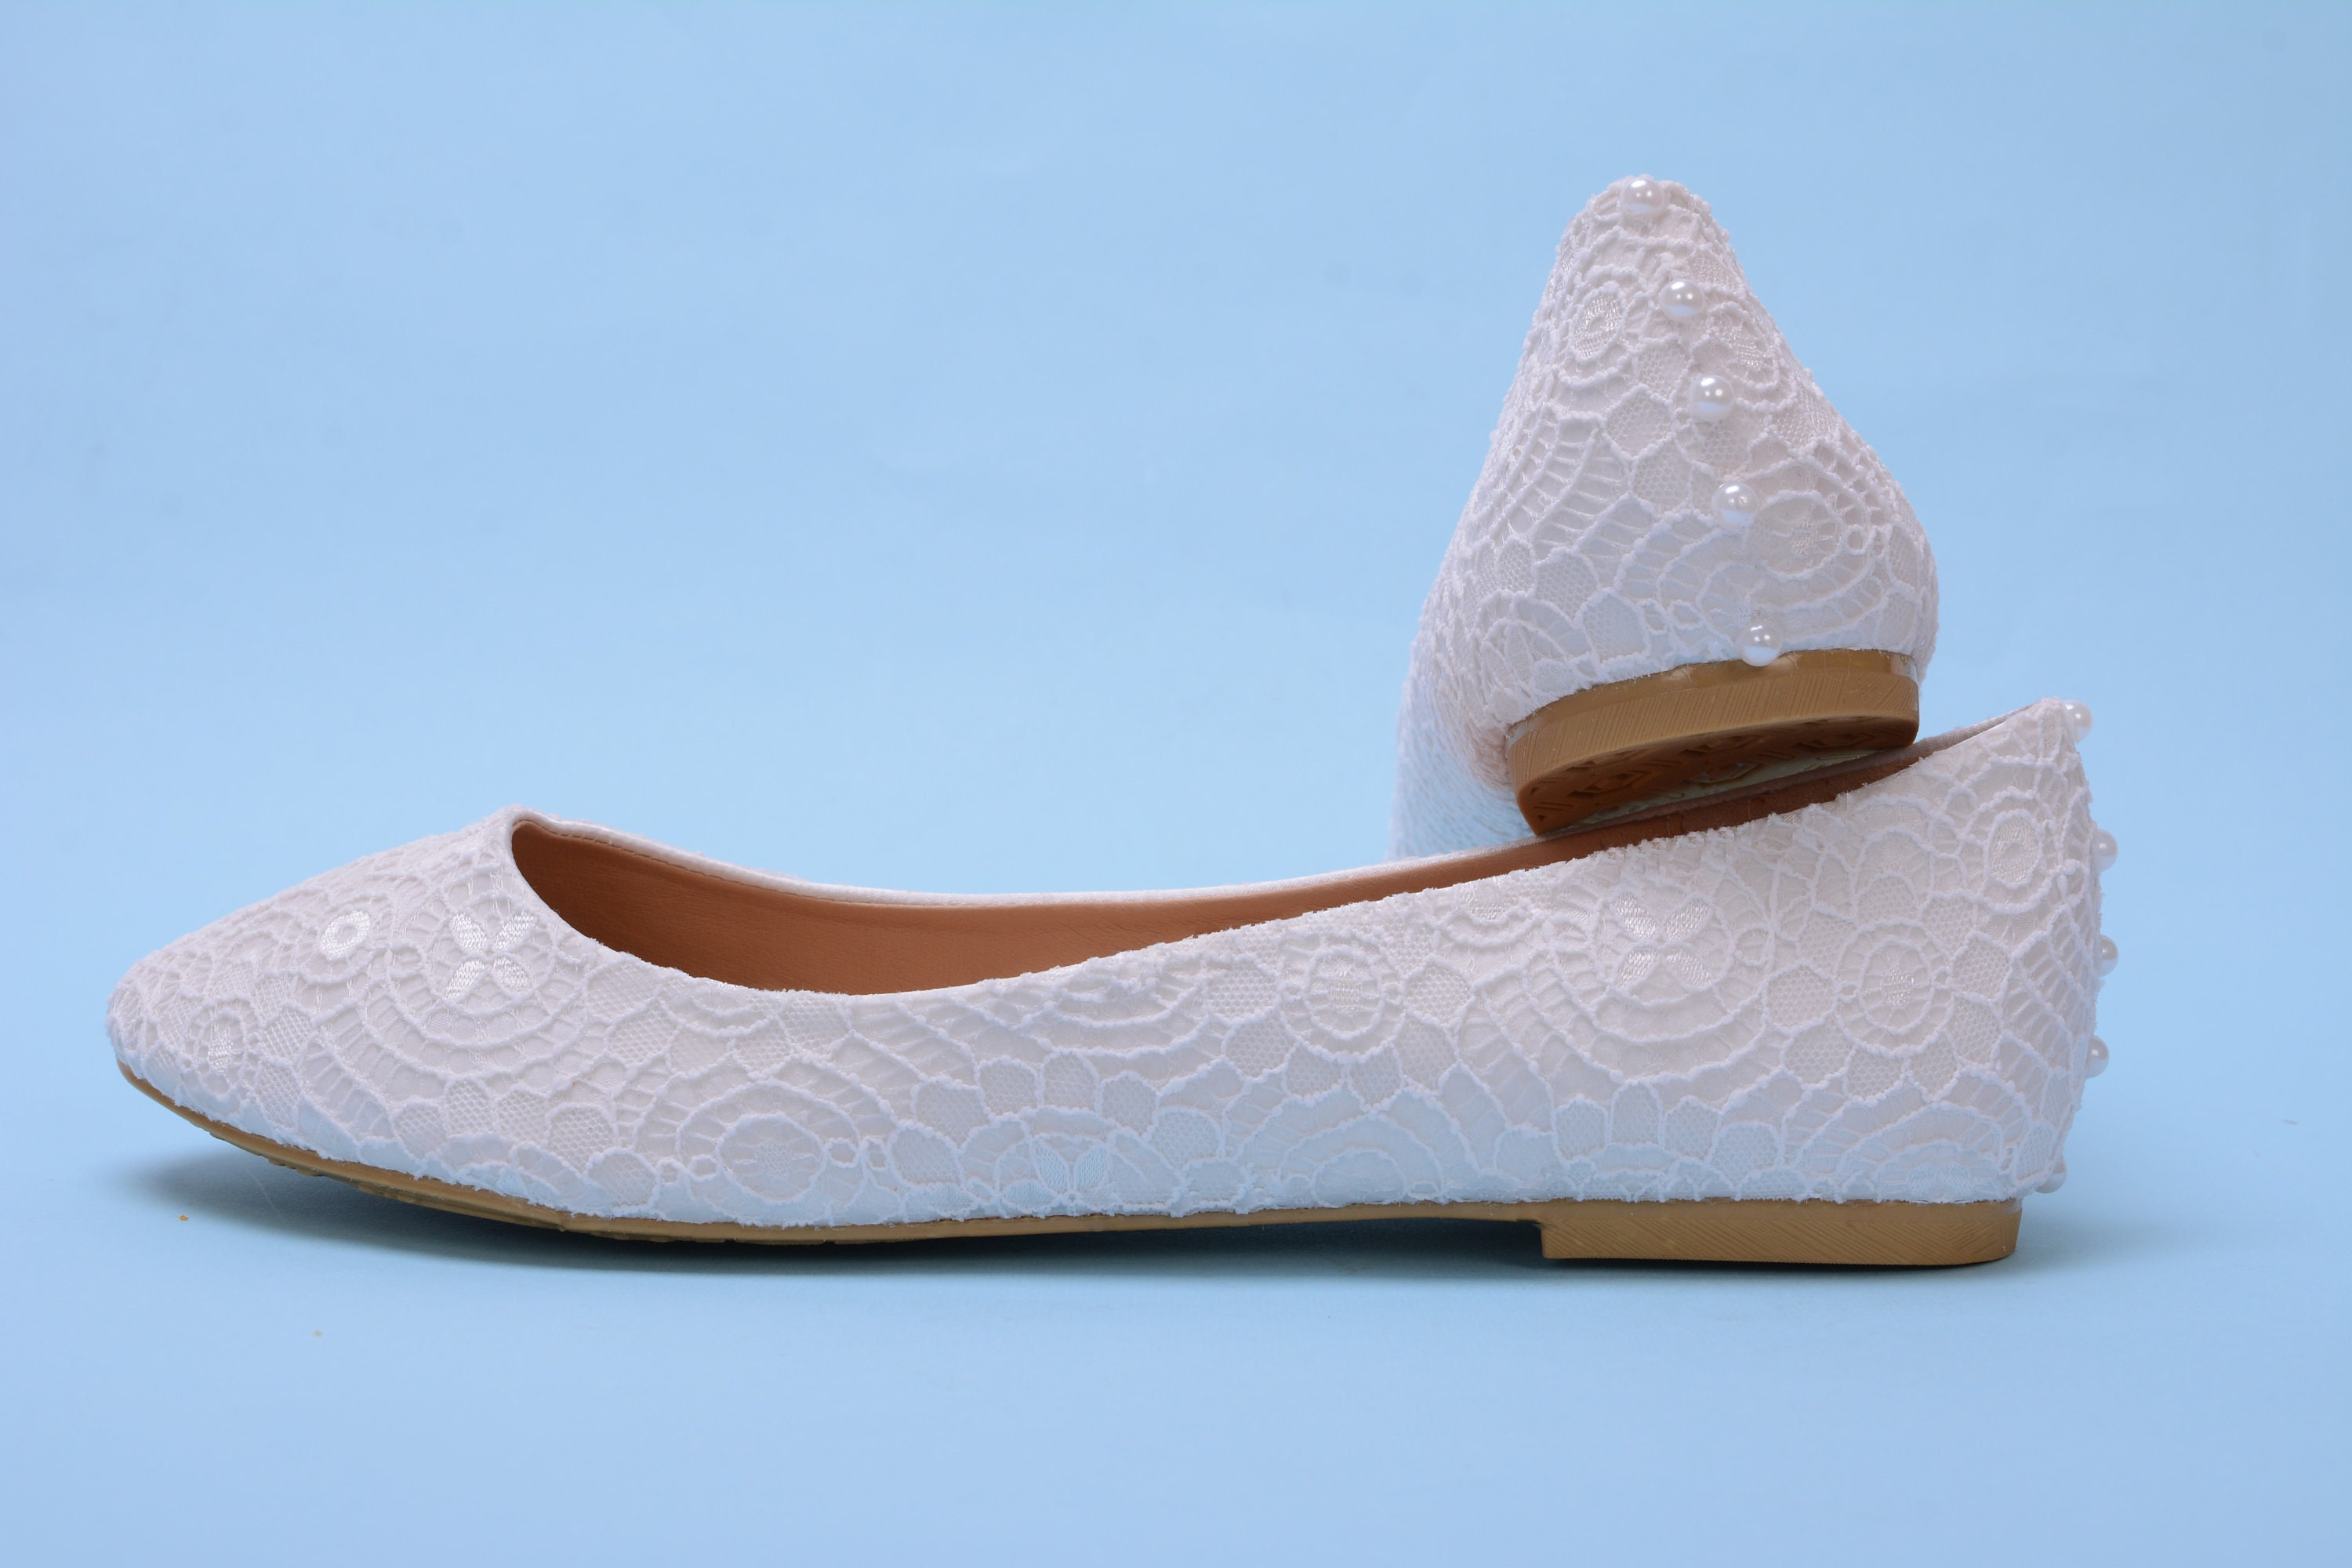 d2db1541e White Lace Flat Shoes For Bride